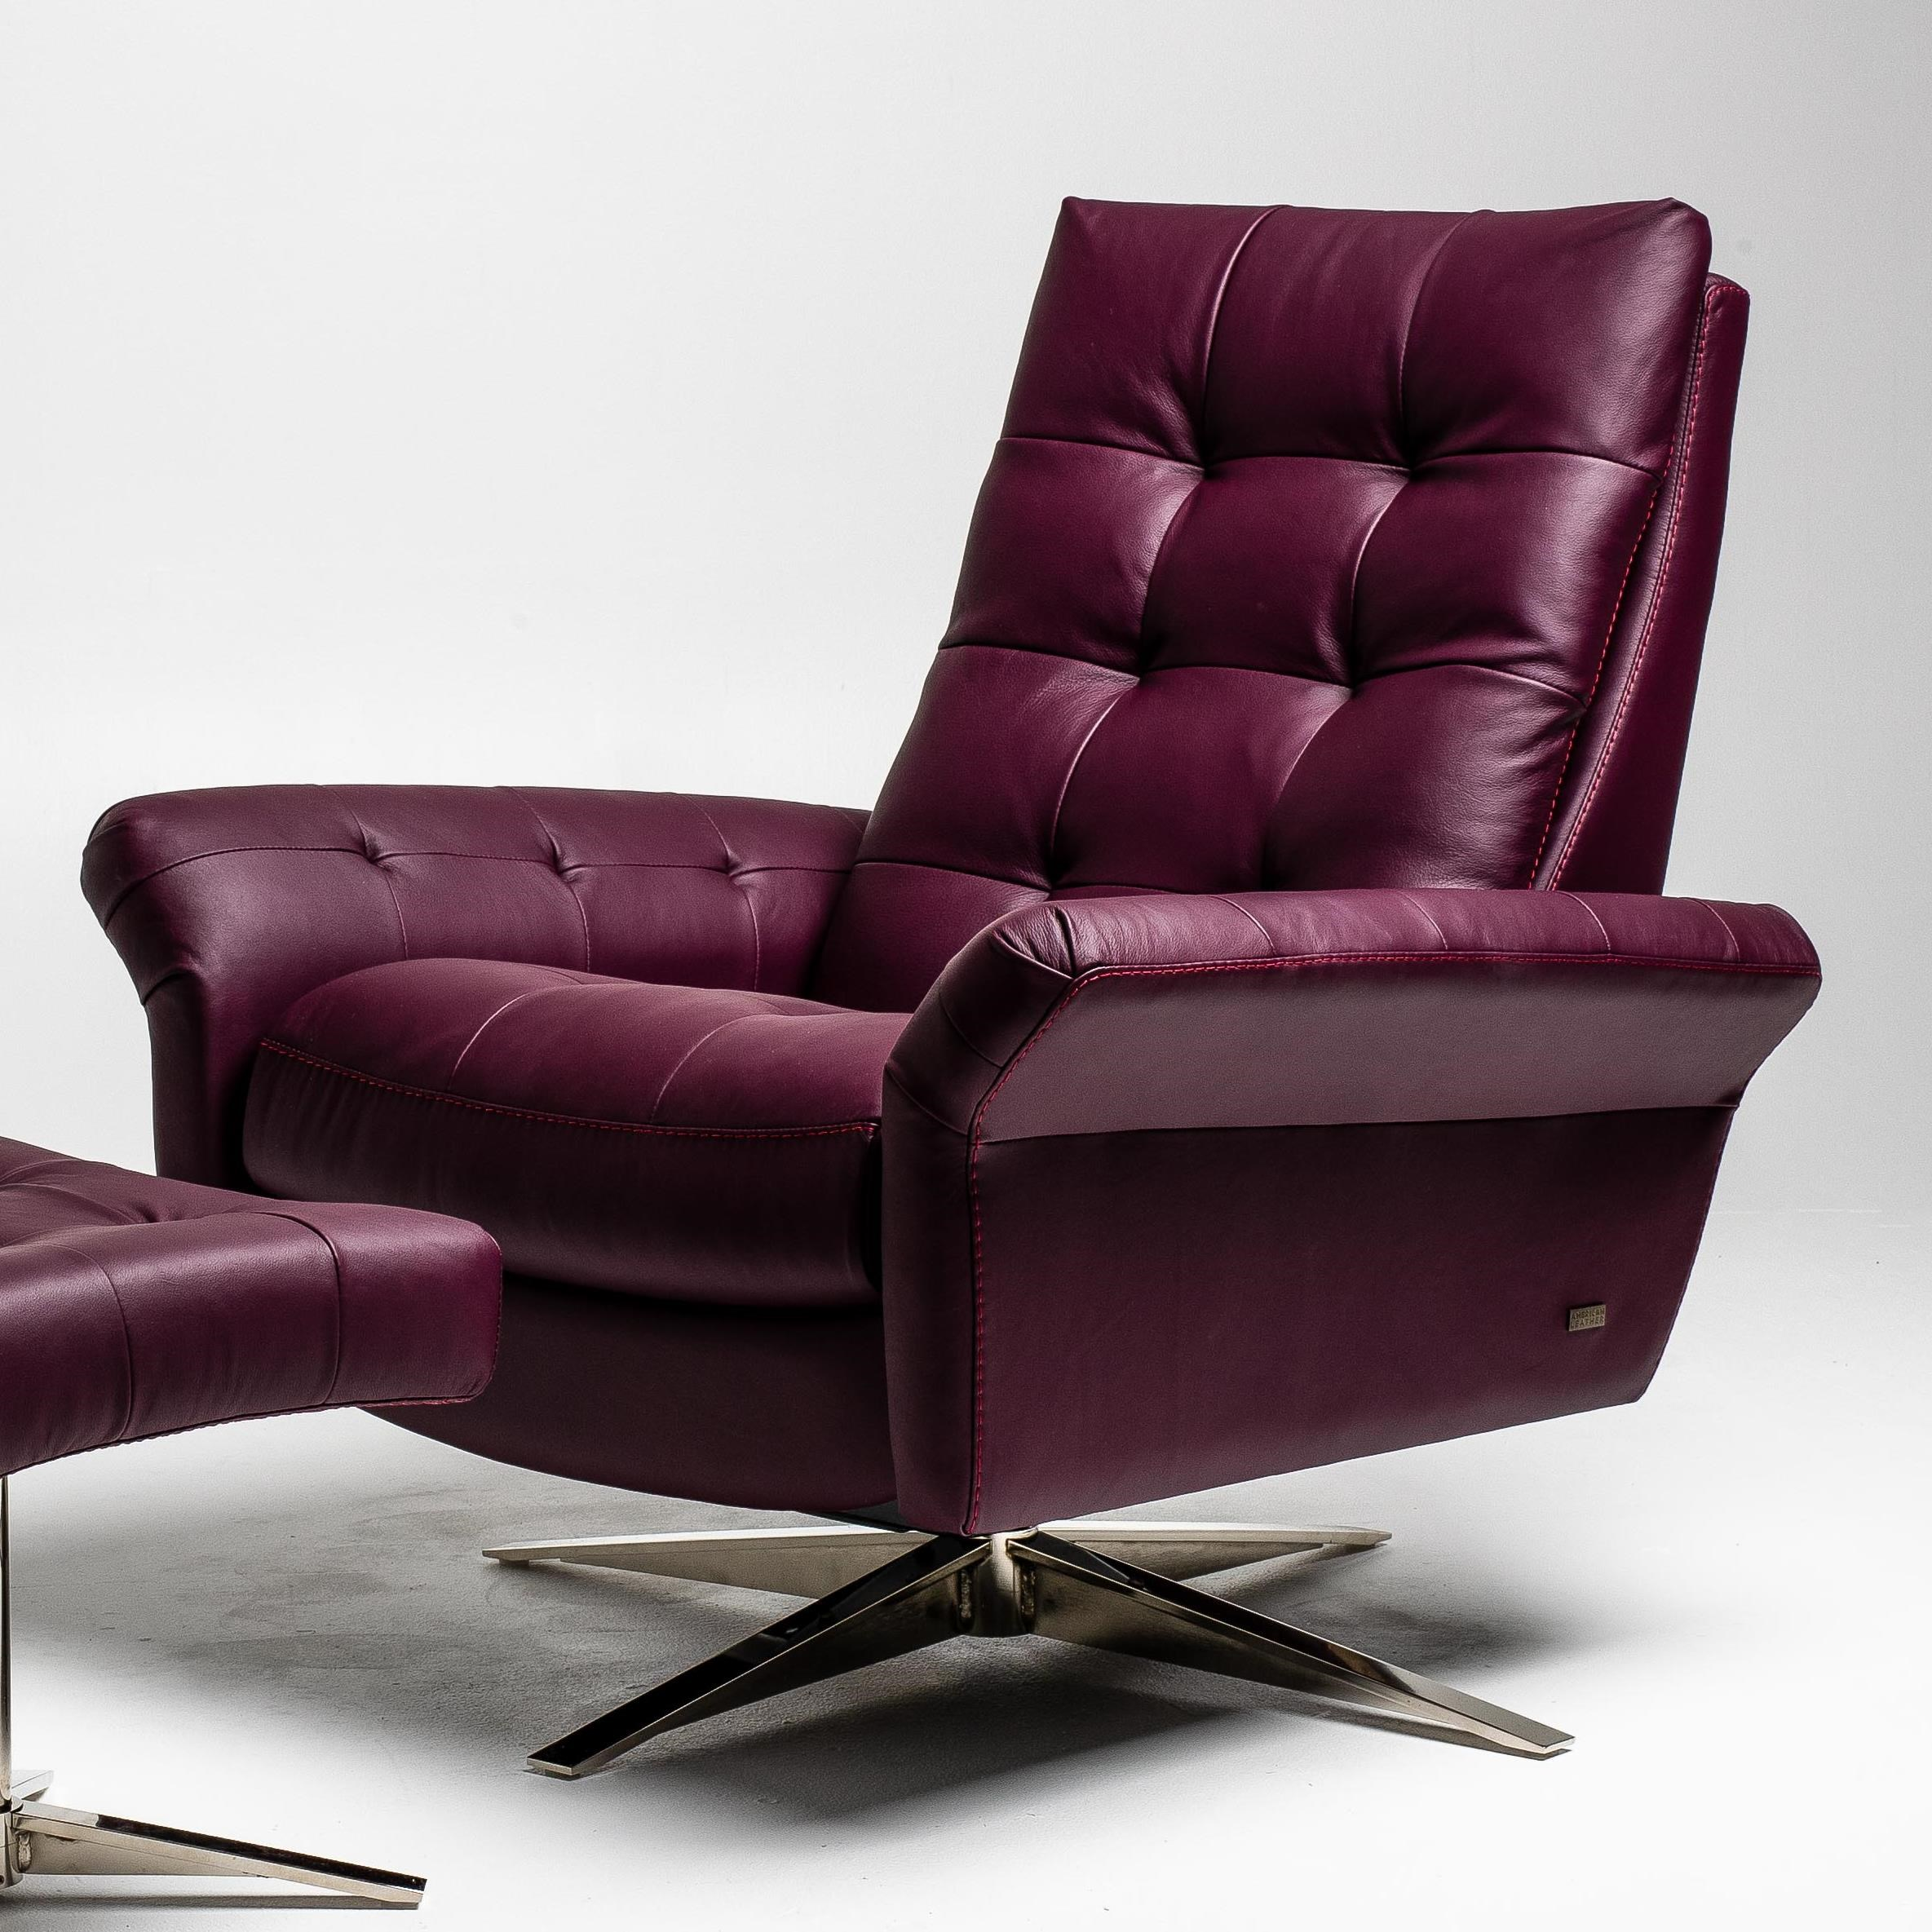 Pileus Swivel Glider Recliner by American Leather at Williams & Kay